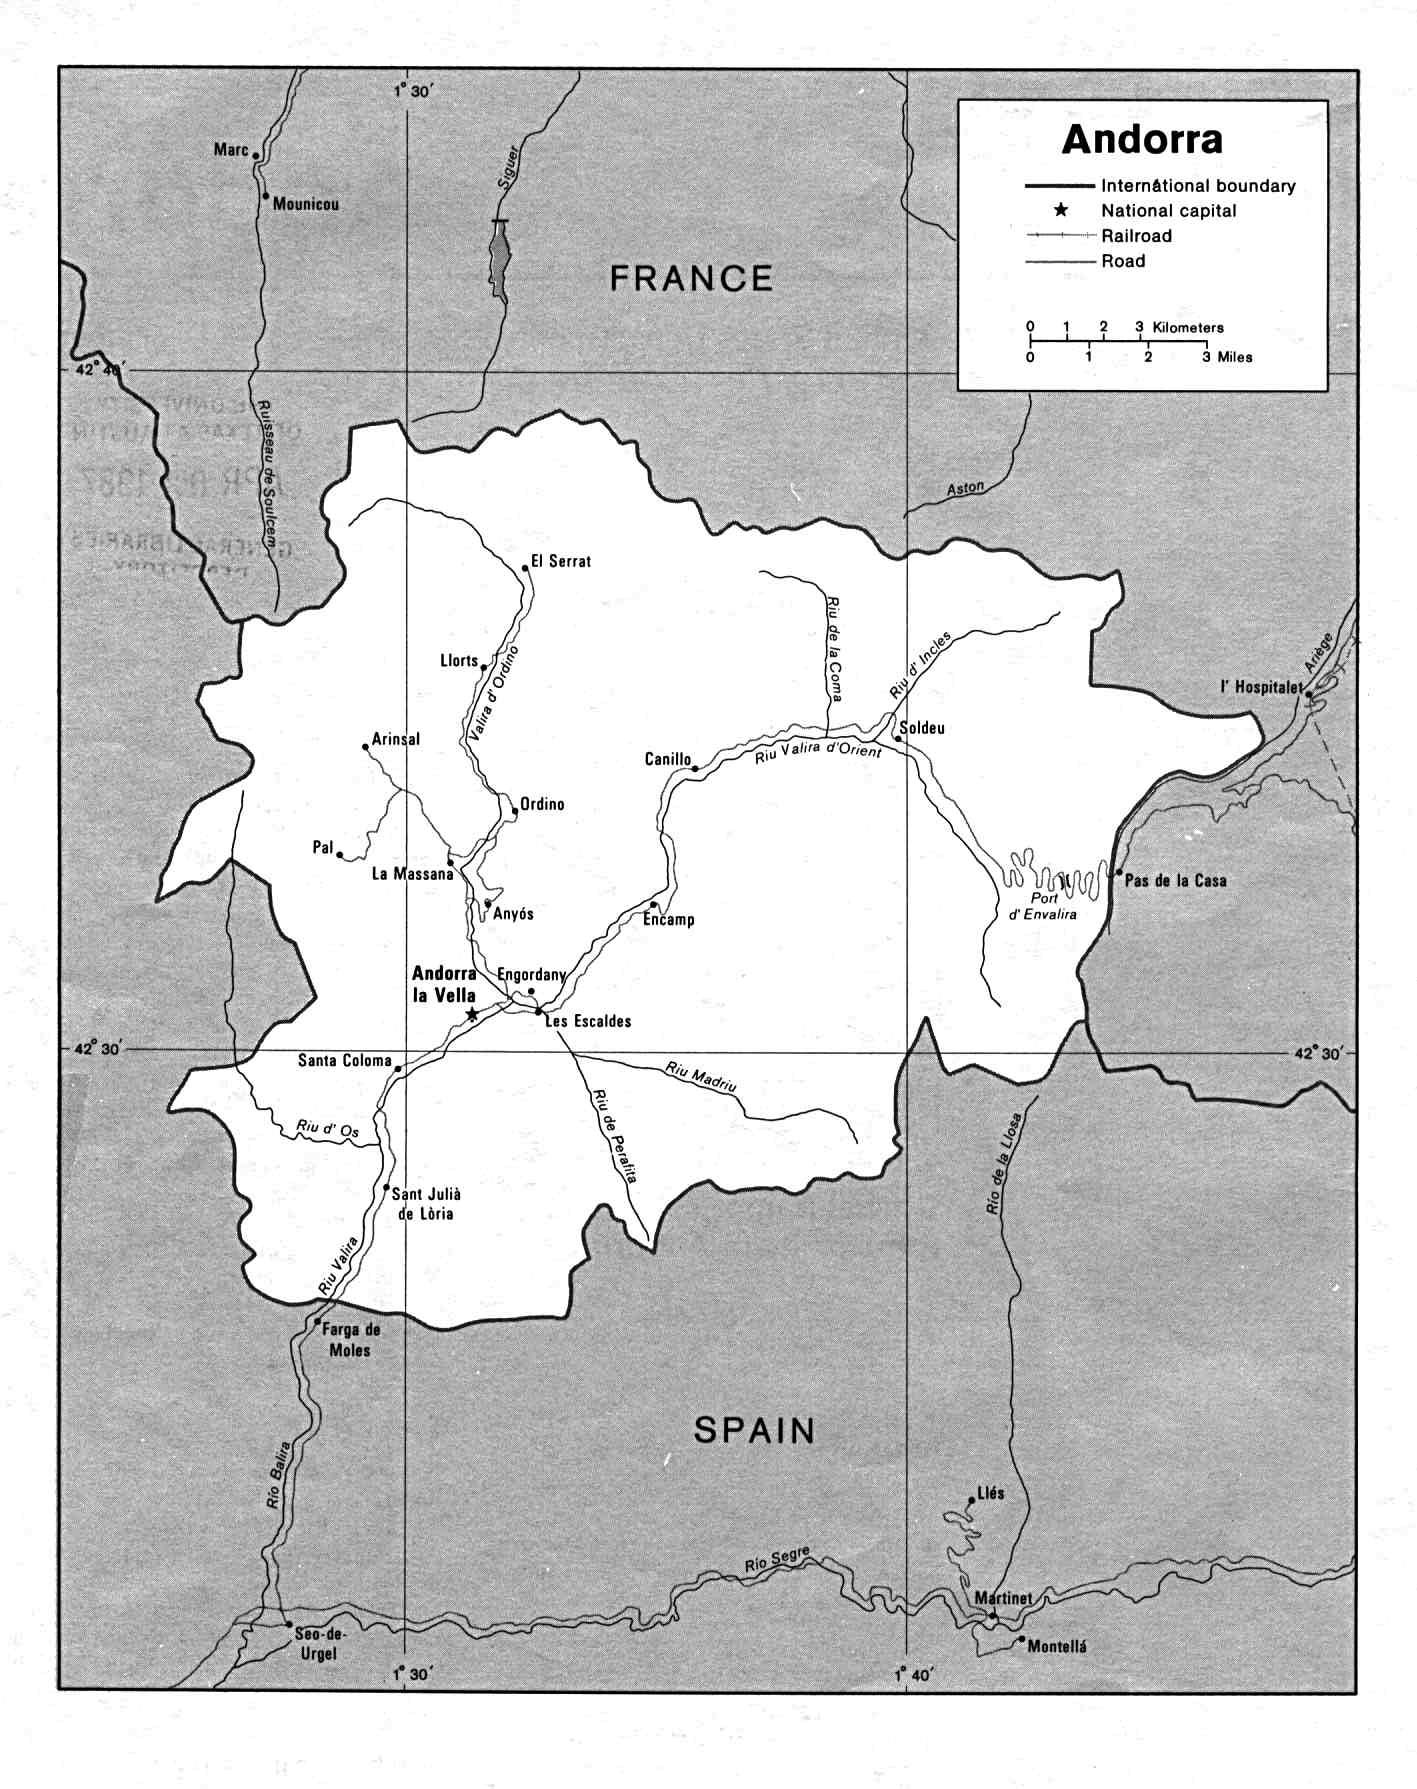 Andorra Maps Printable Maps of Andorra for Download